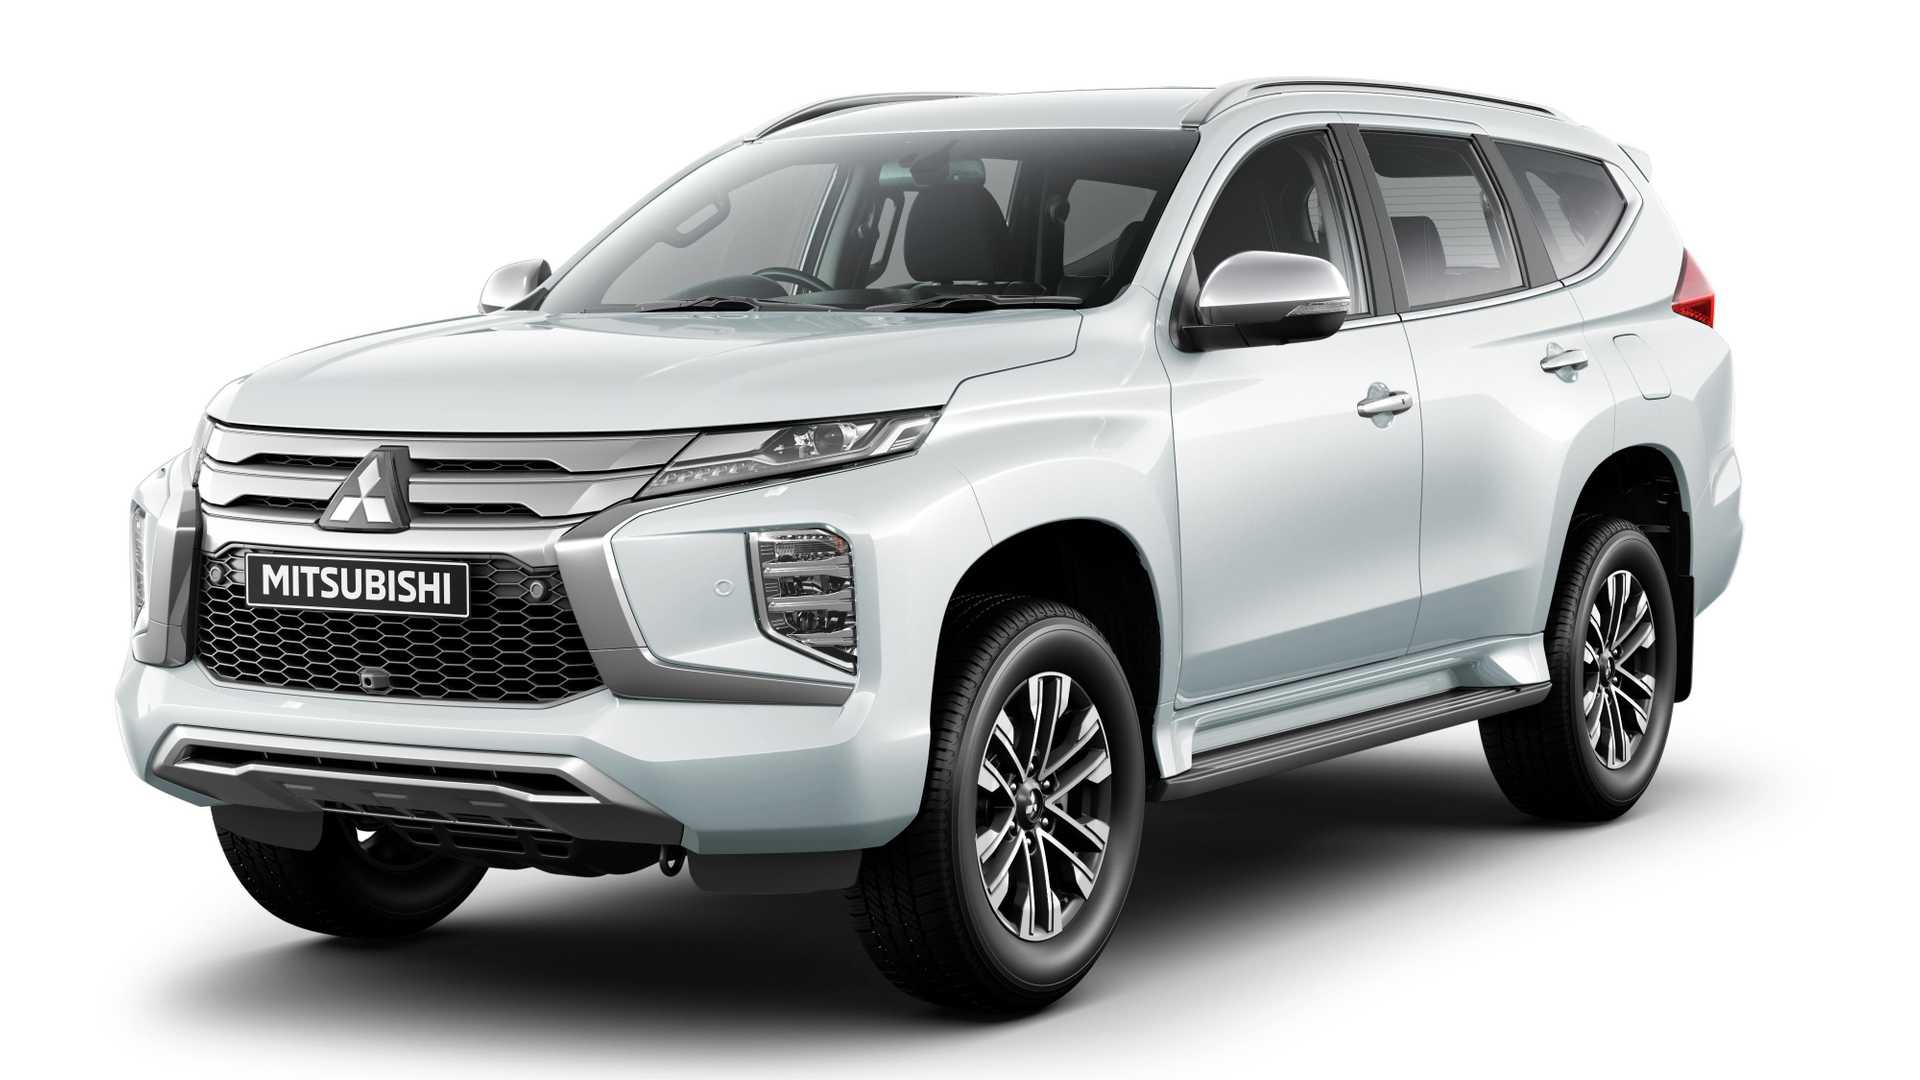 Mitsubishi Montero Sport 2021 3 0l Gls 4wd Premium In Uae New Car Prices Specs Reviews Amp Photos Yallamotor